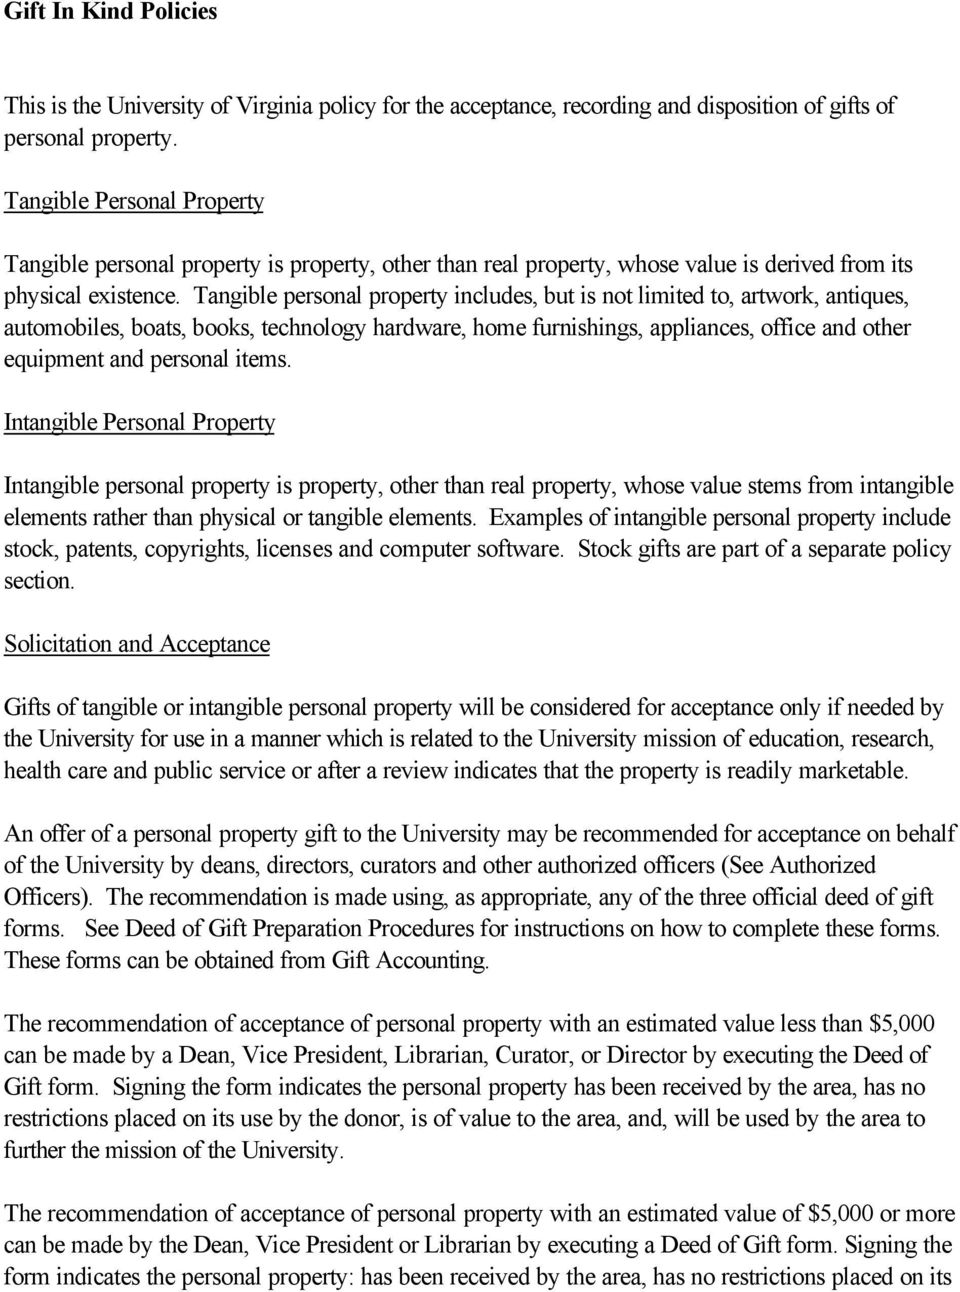 Tangible personal property includes, but is not limited to, artwork, antiques, automobiles, boats, books, technology hardware, home furnishings, appliances, office and other equipment and personal